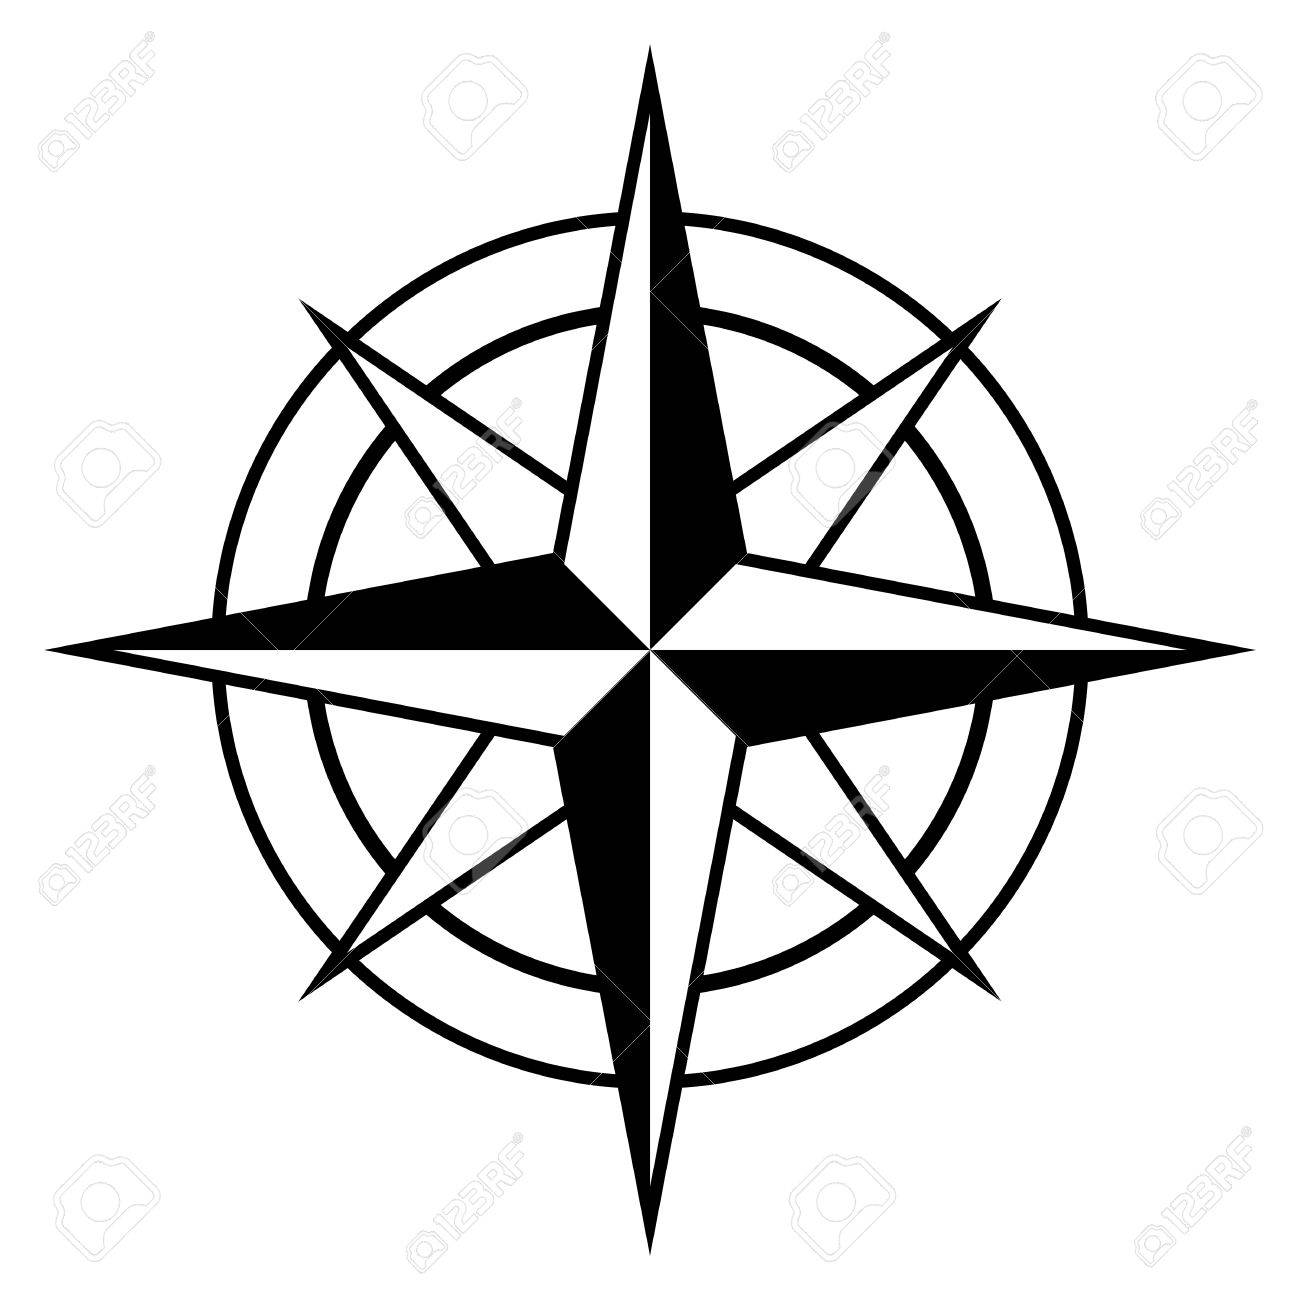 Antique Style Compass Rose Icon In Black And White For Marine Nautical Themes Vector